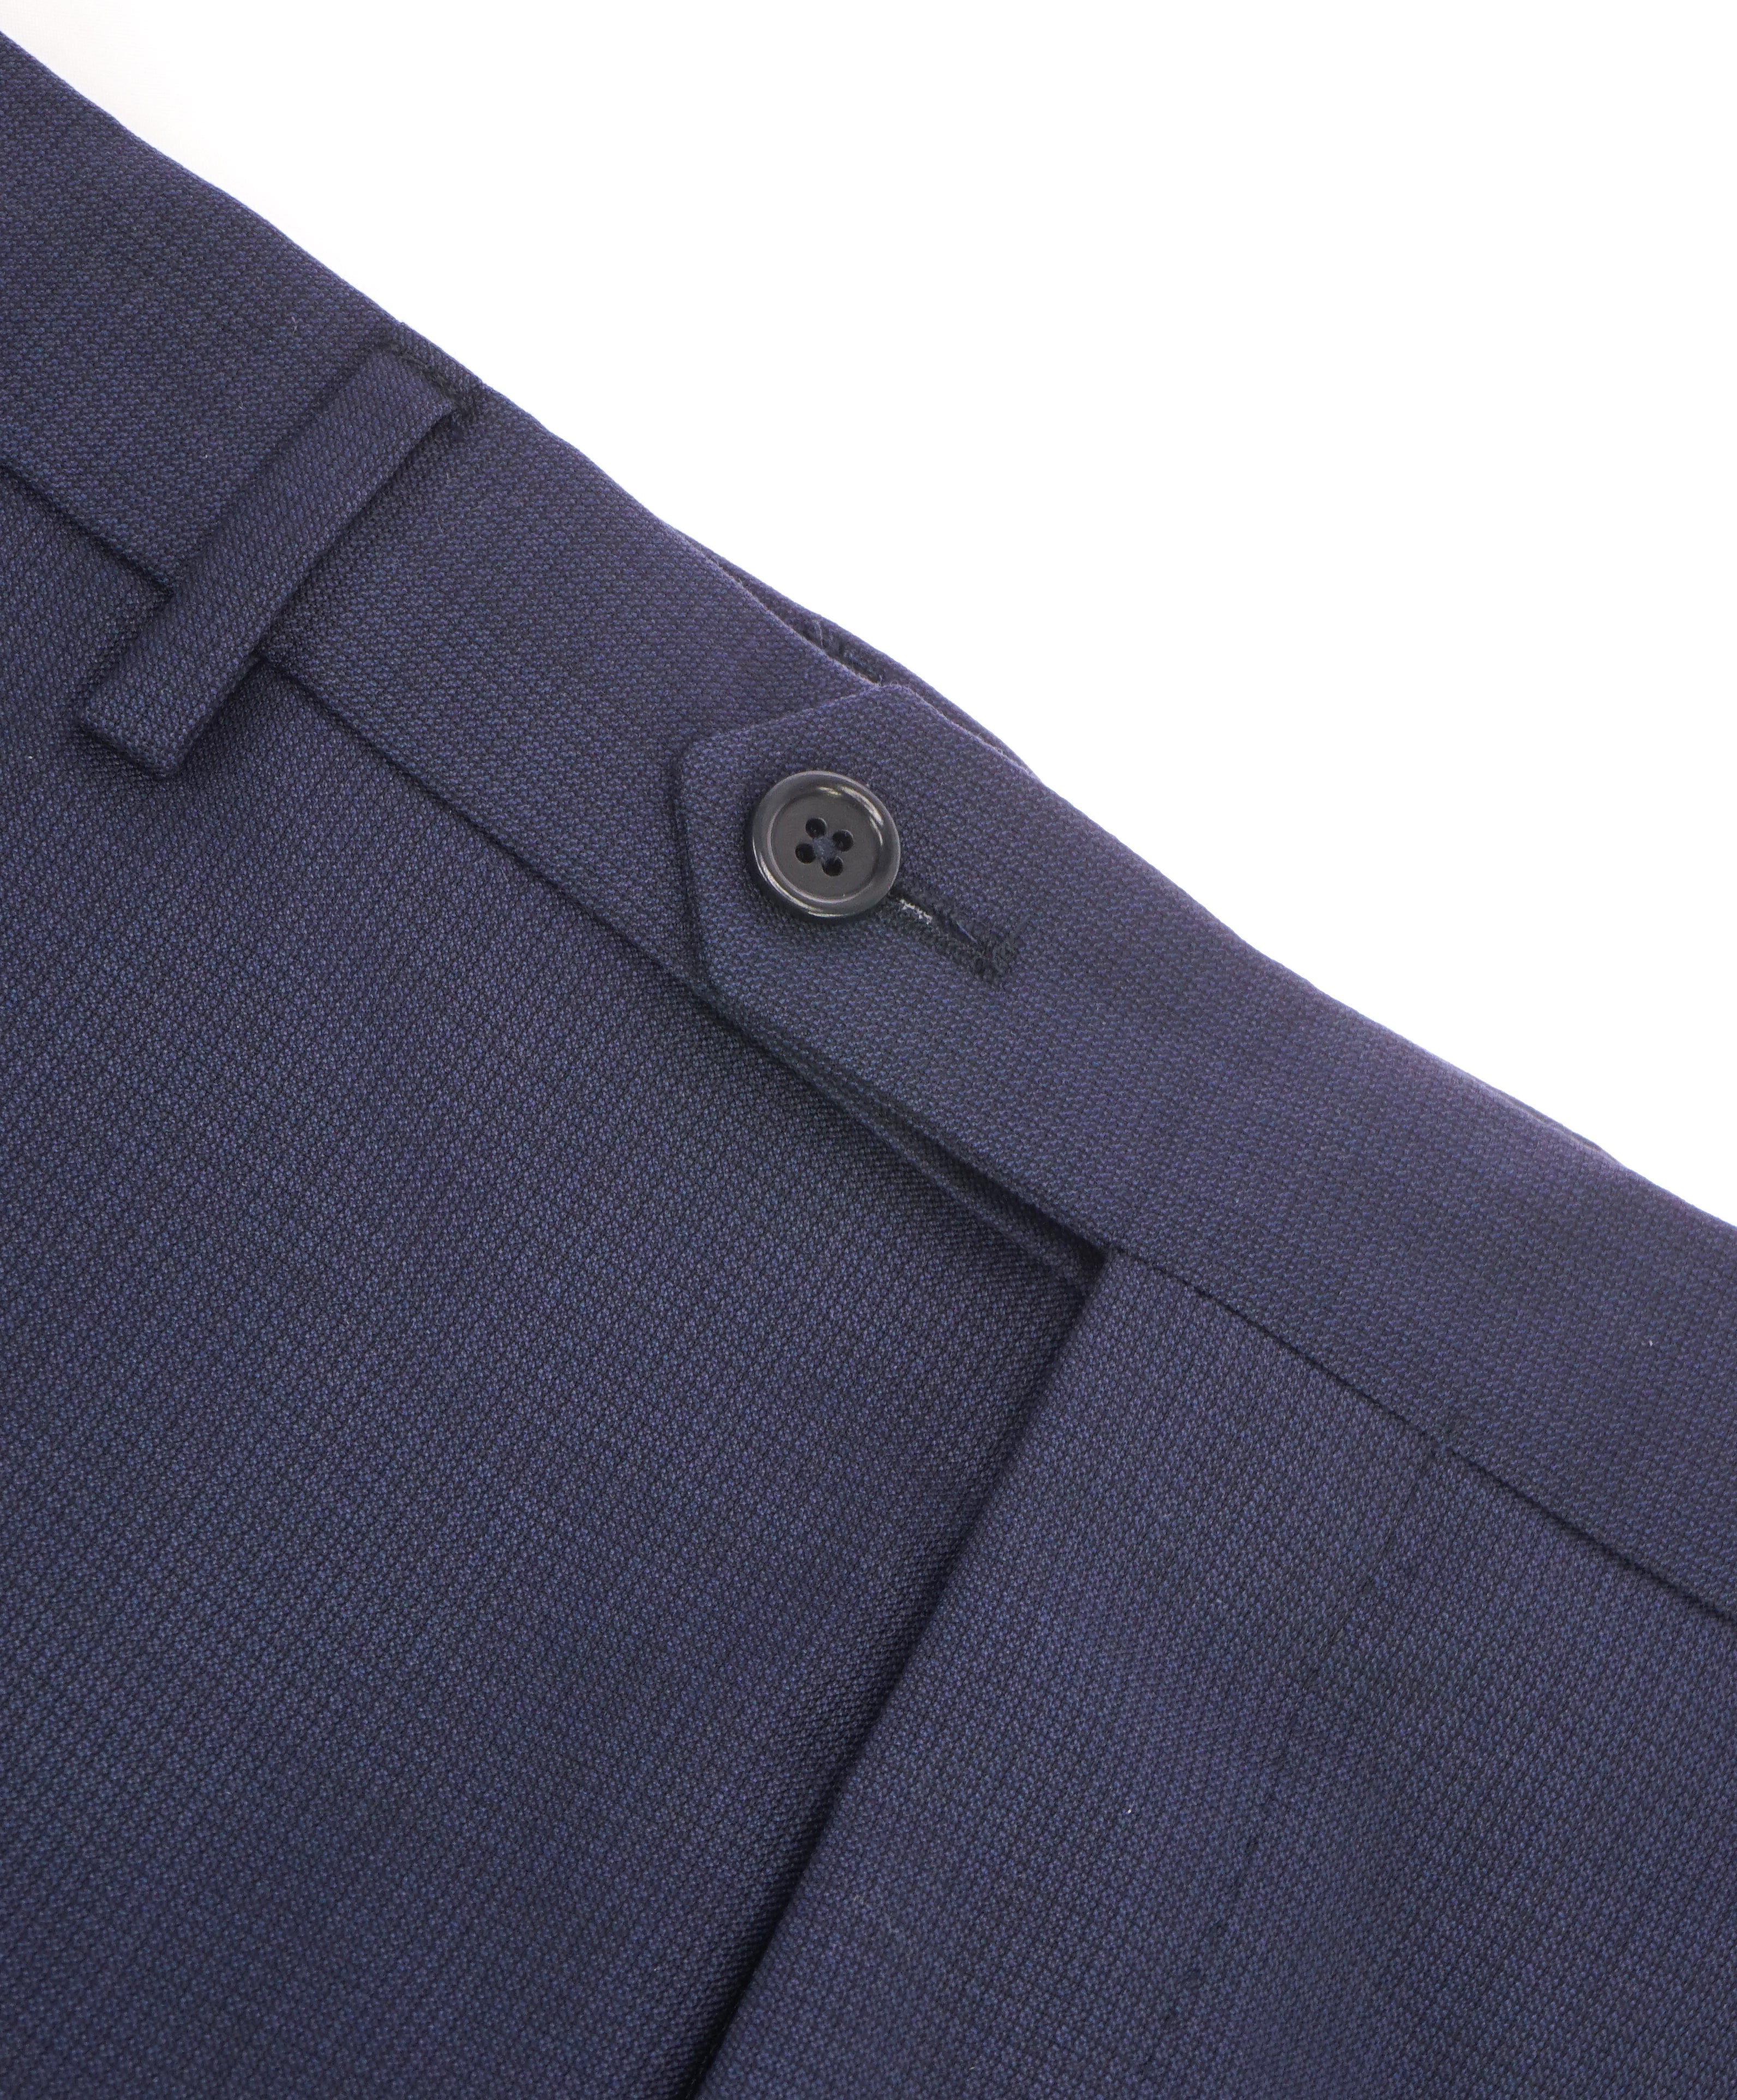 SAKS FIFTH AVE - Blue Wool MADE IN ITALY Check Flat Front Dress Pants -  34W